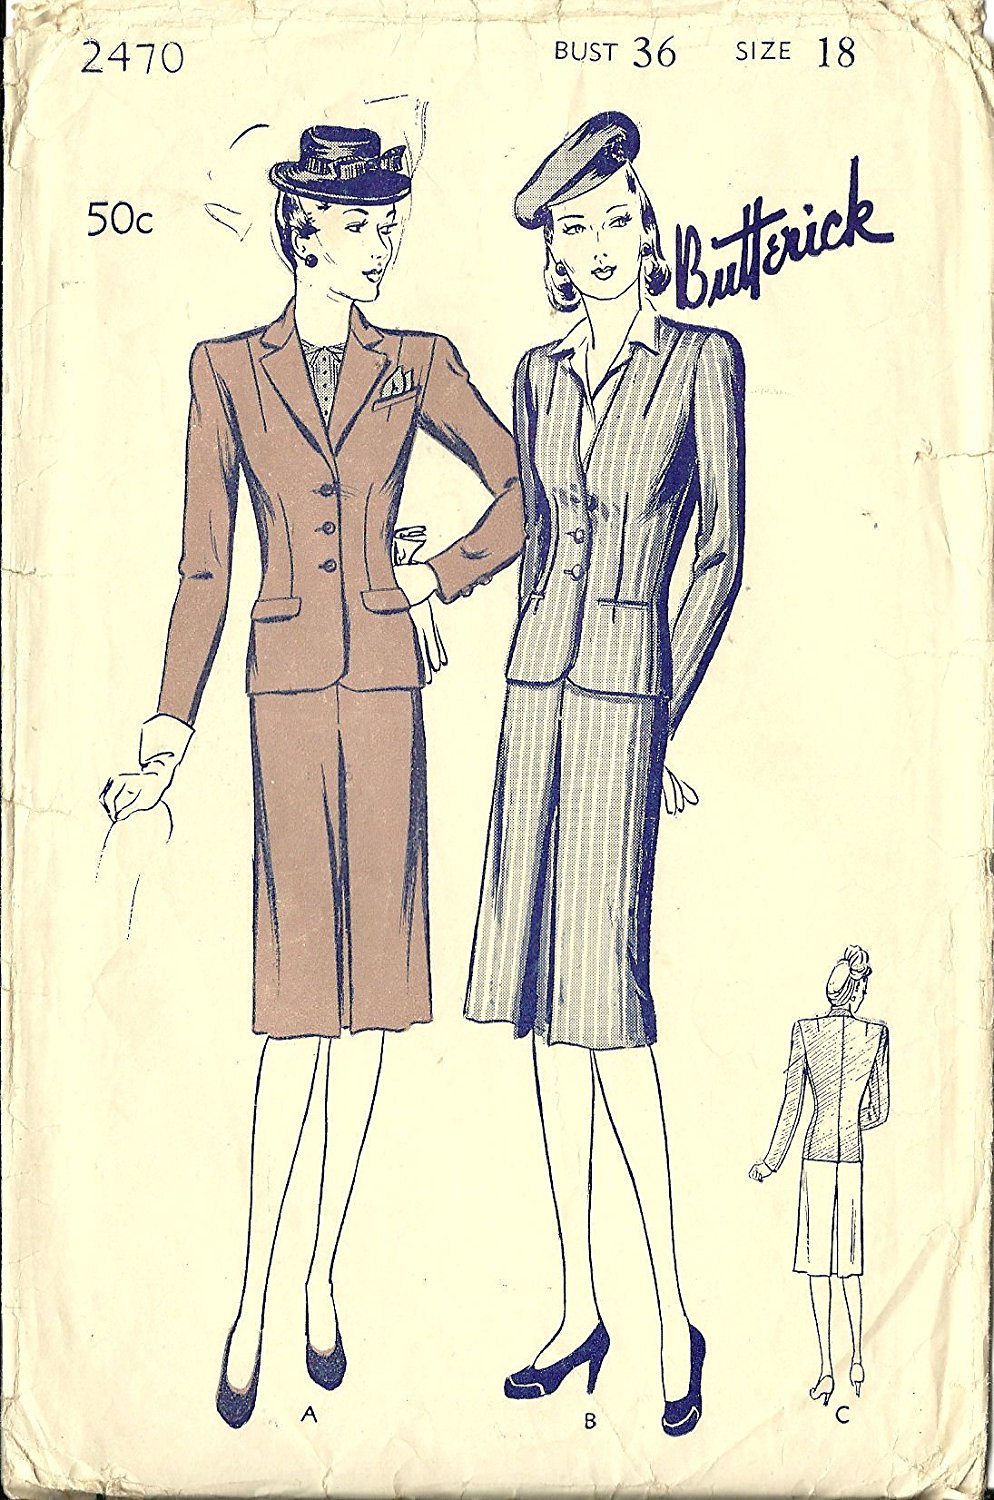 6ff4070ac8 Butterick vintage 1940s sewing pattern 2470 skirt suit - Size 18. Butterick  Sewing Pattern 5027 His   Hers Gifts Mens ...